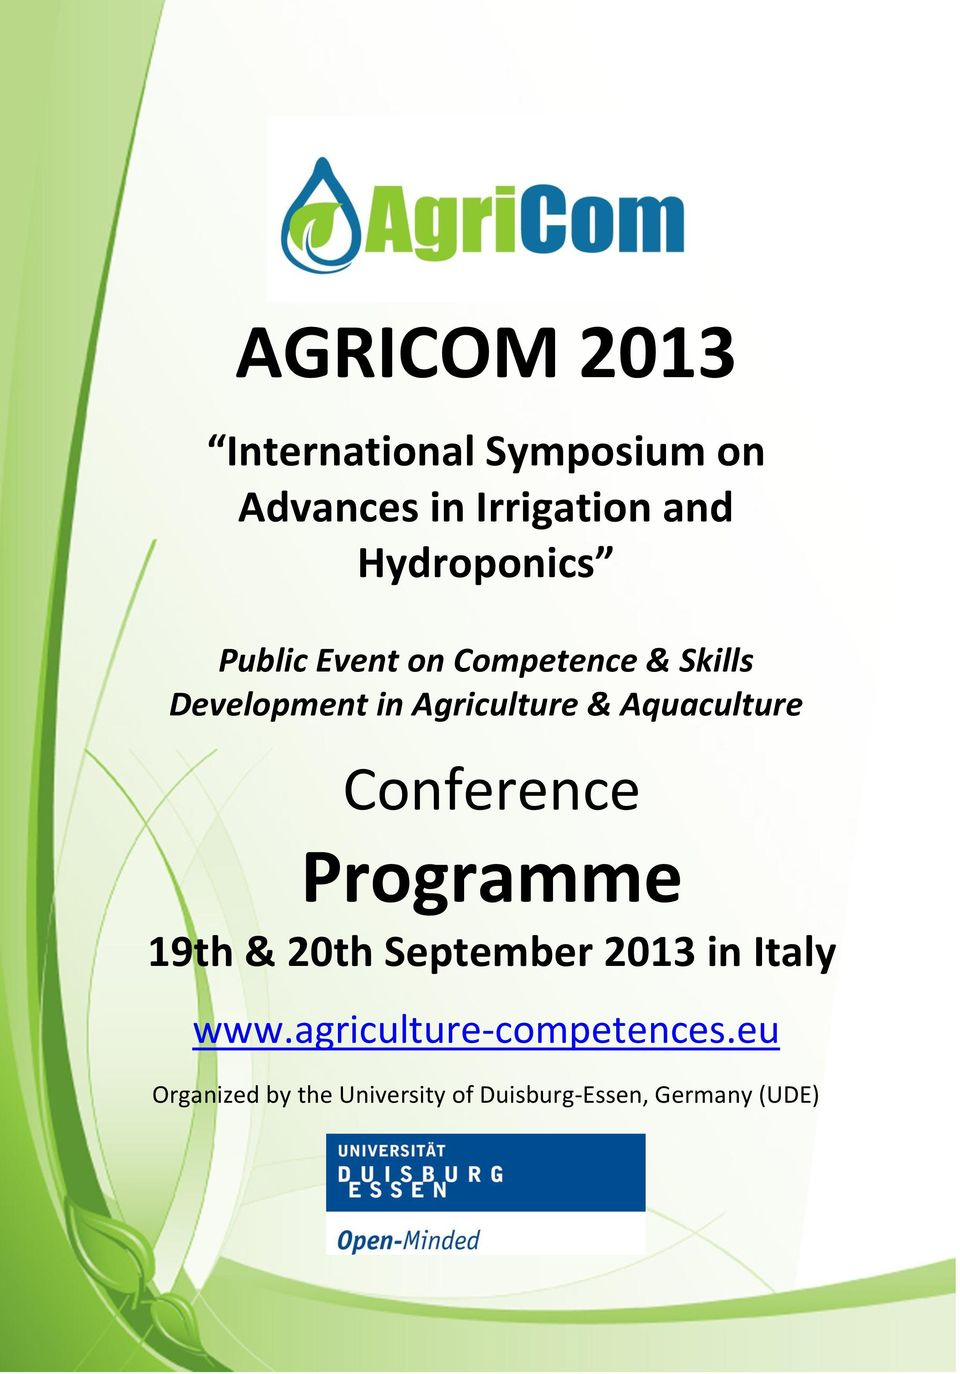 20th September 2013 in Italy www.agriculture-competences.